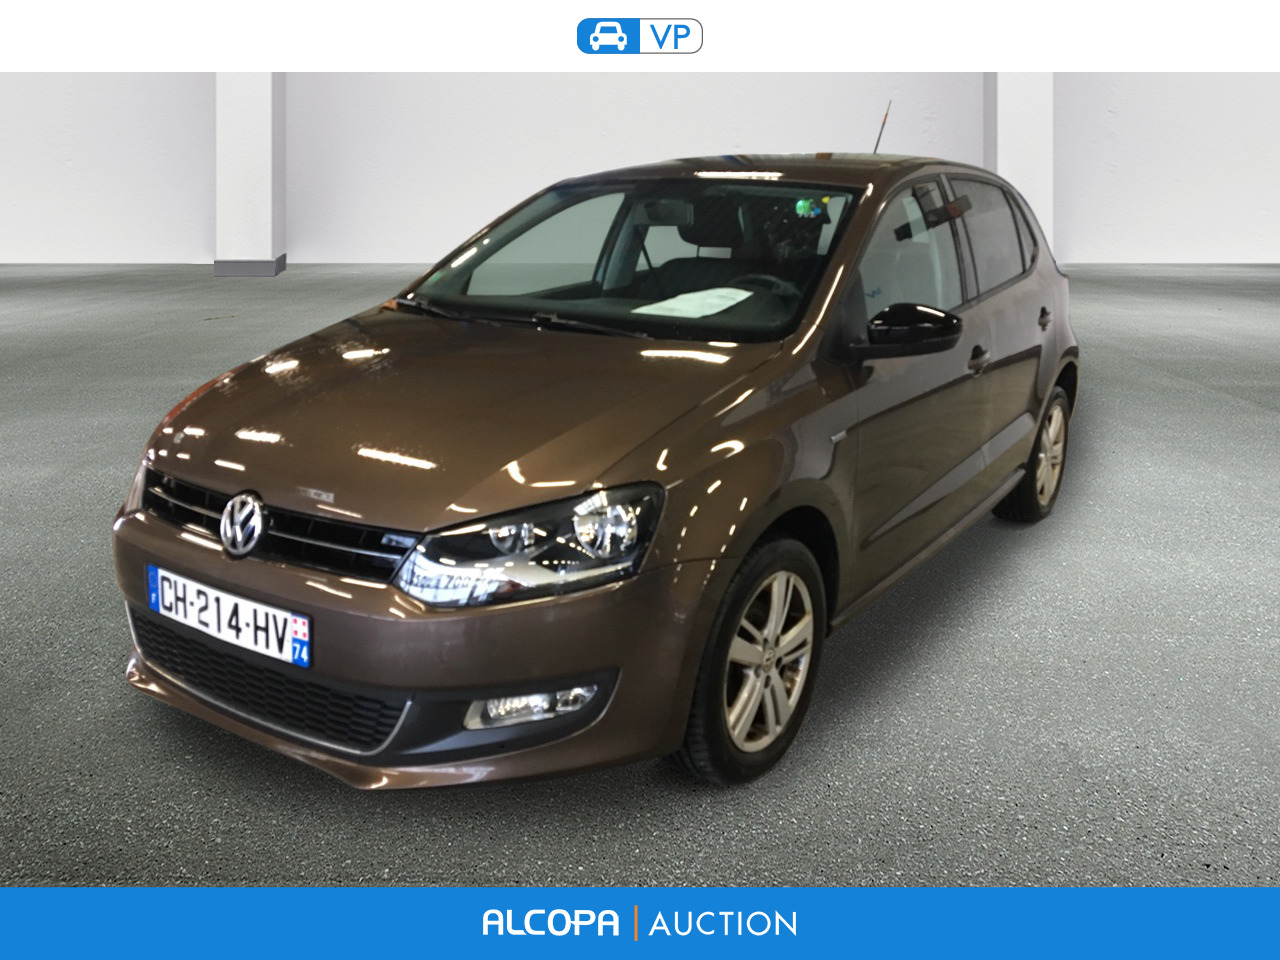 volkswagen polo polo 1 6 tdi 90ch fap match 5p rennes alcopa auction. Black Bedroom Furniture Sets. Home Design Ideas